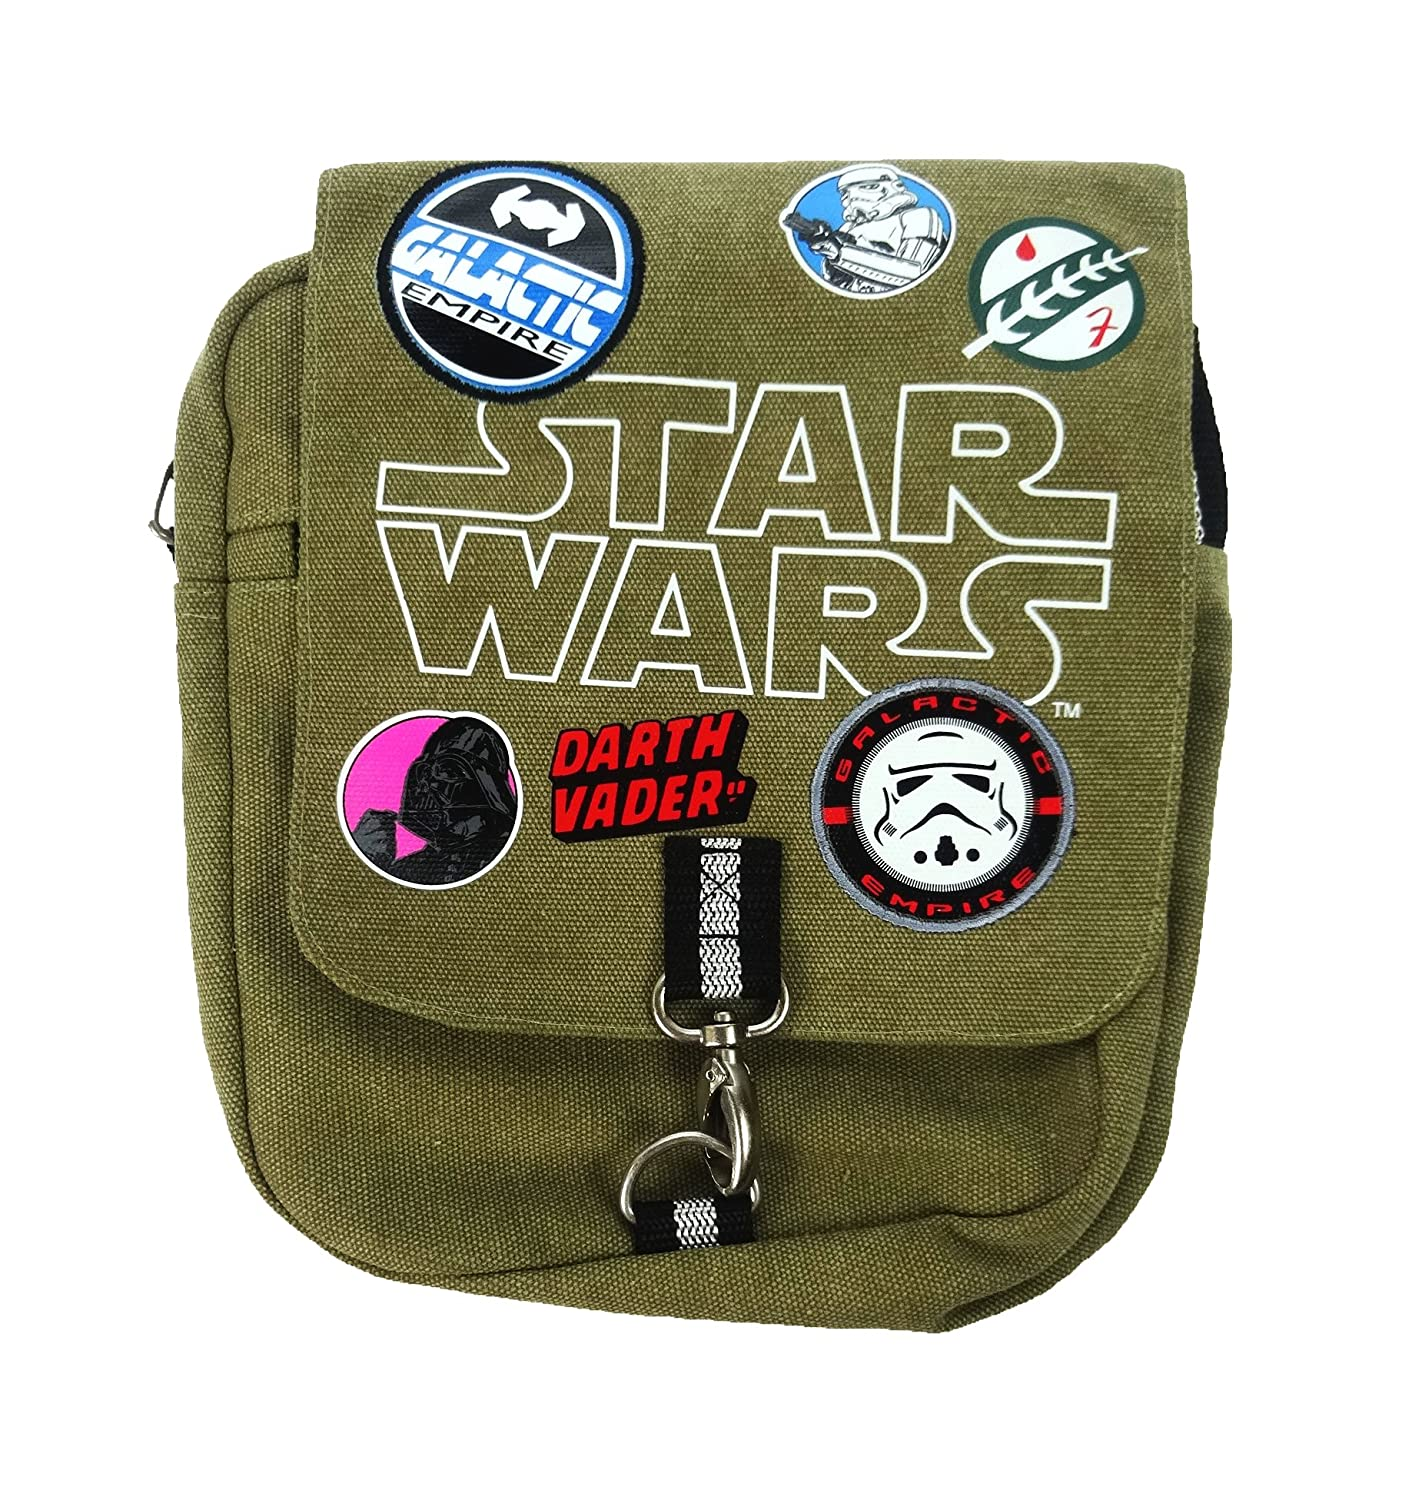 Star Wars Cross Body Bag M/ünzb/örse Gr/ün 25 cm Khaki